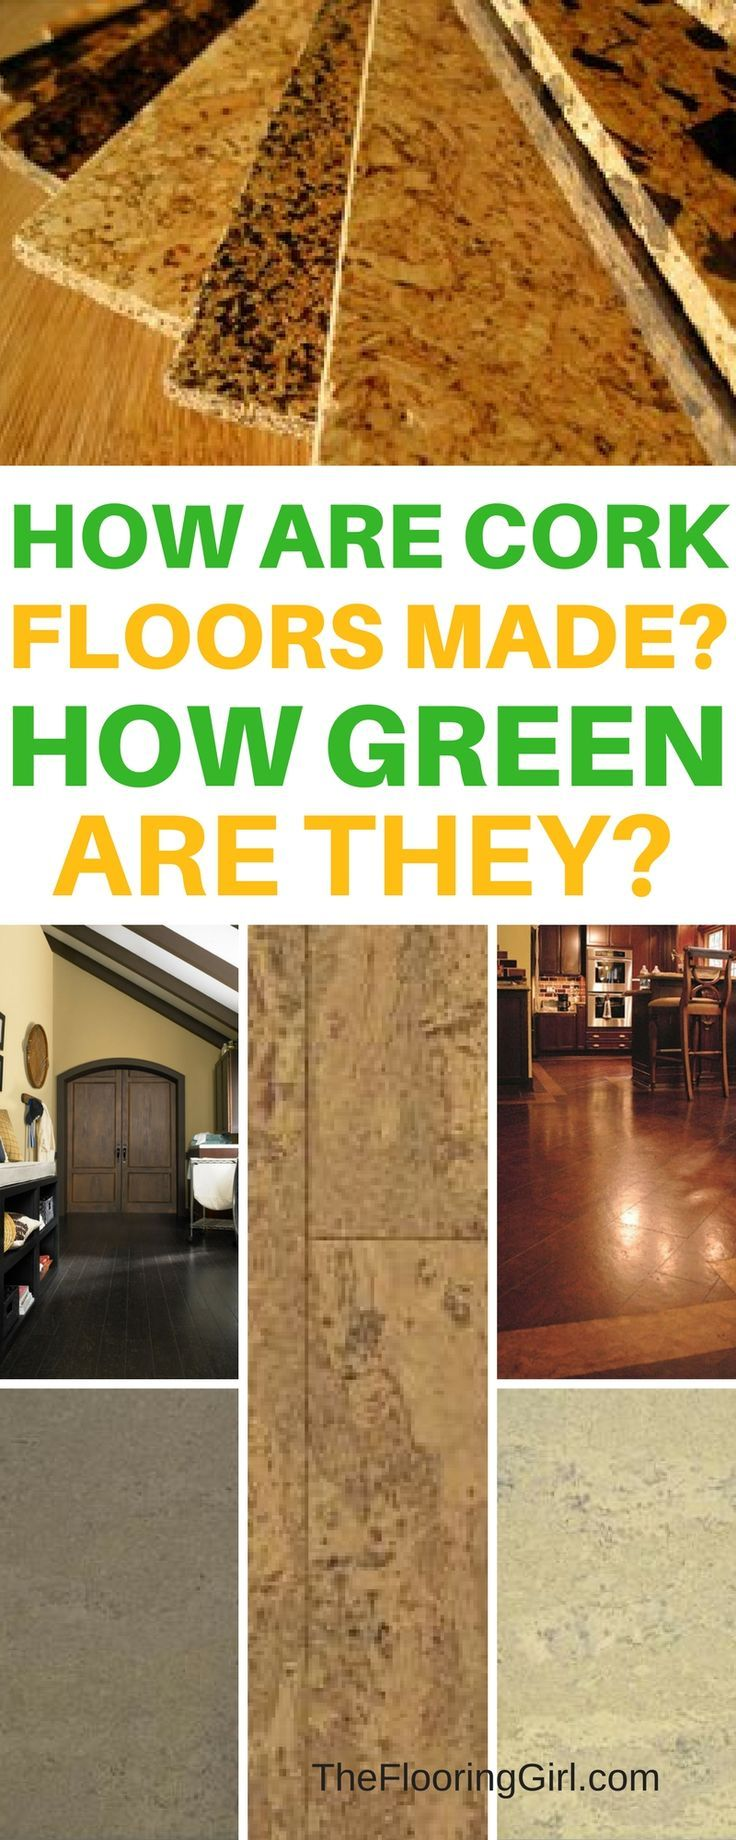 How Is Cork Flooring Made Green It Fascinating Process Theflooring